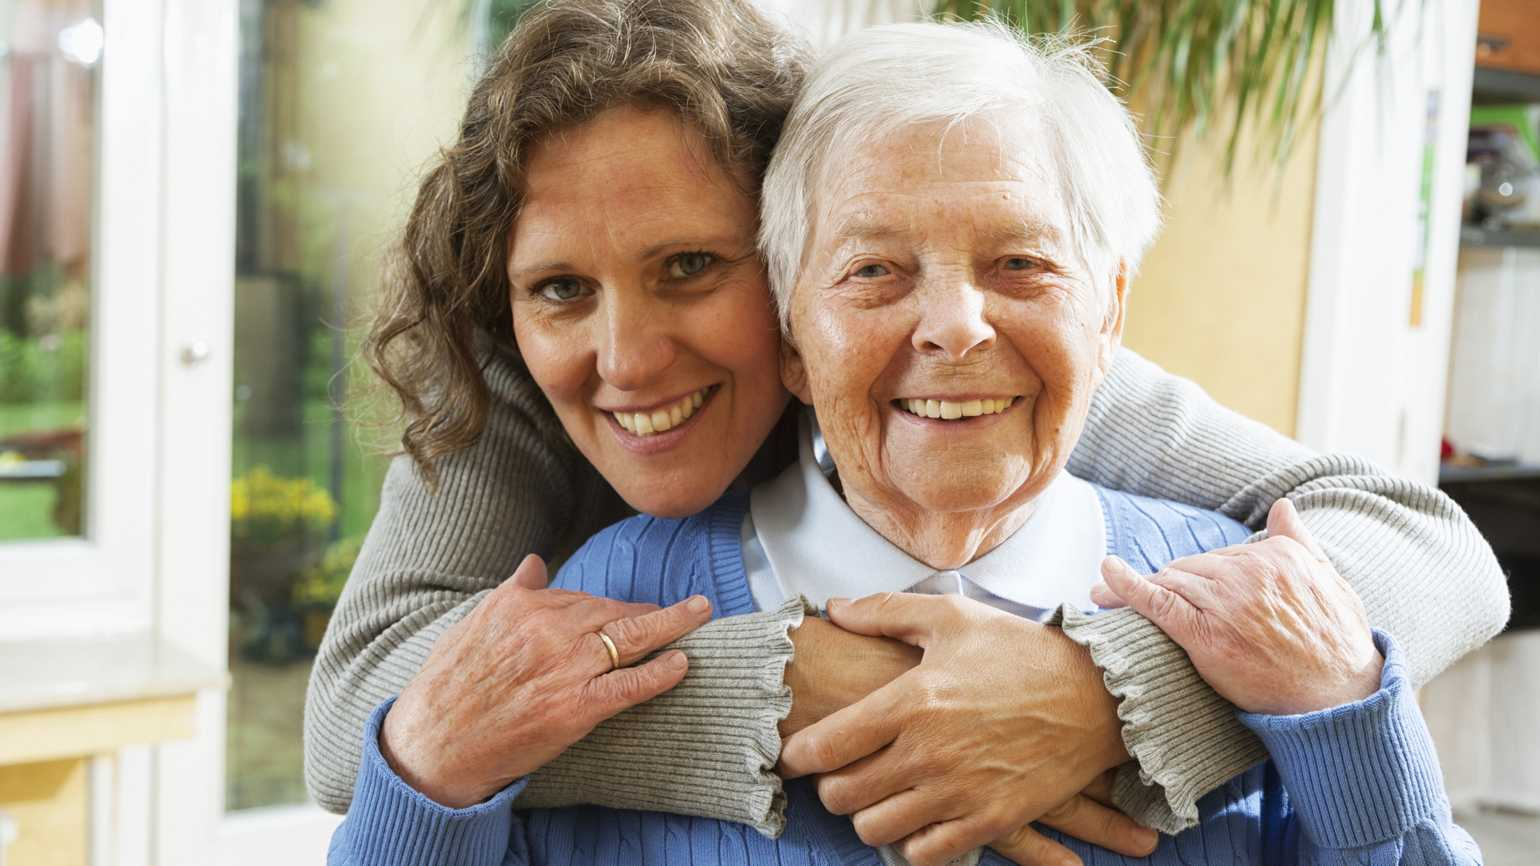 A woman and her aging mother in a loving embrace.